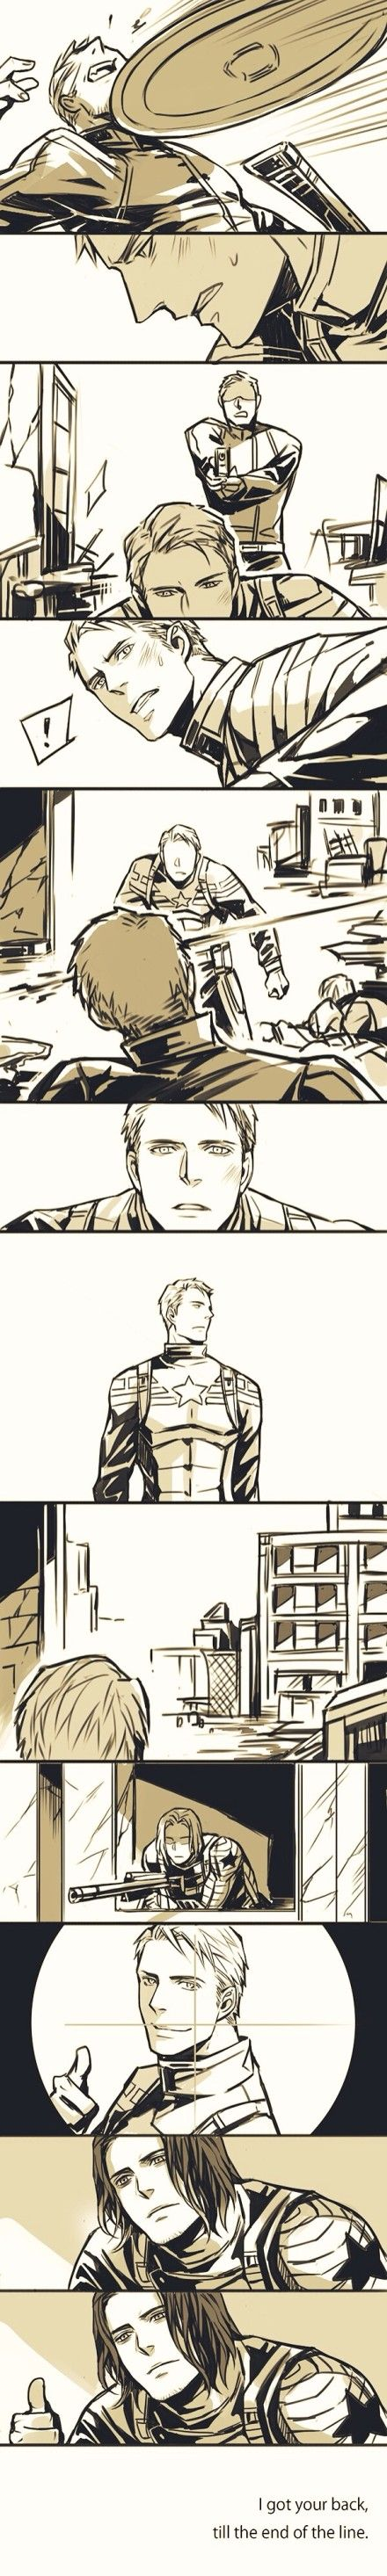 Captain America and Bucky comic